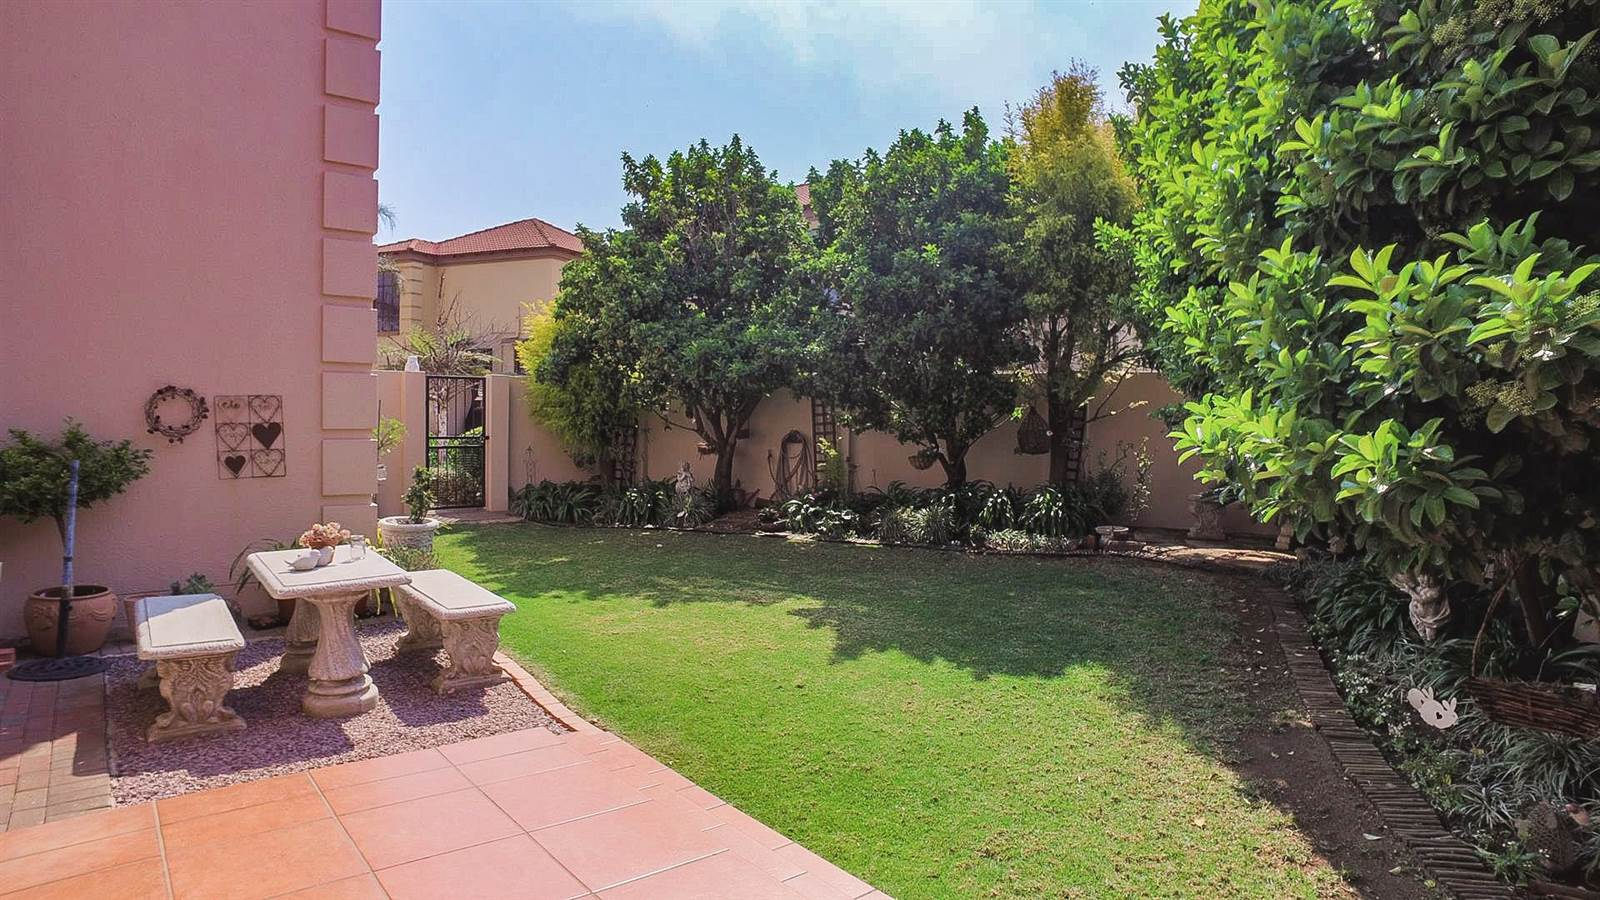 4 Bedroom Townhouse for sale in Mulbarton ENT0067436 : photo#9